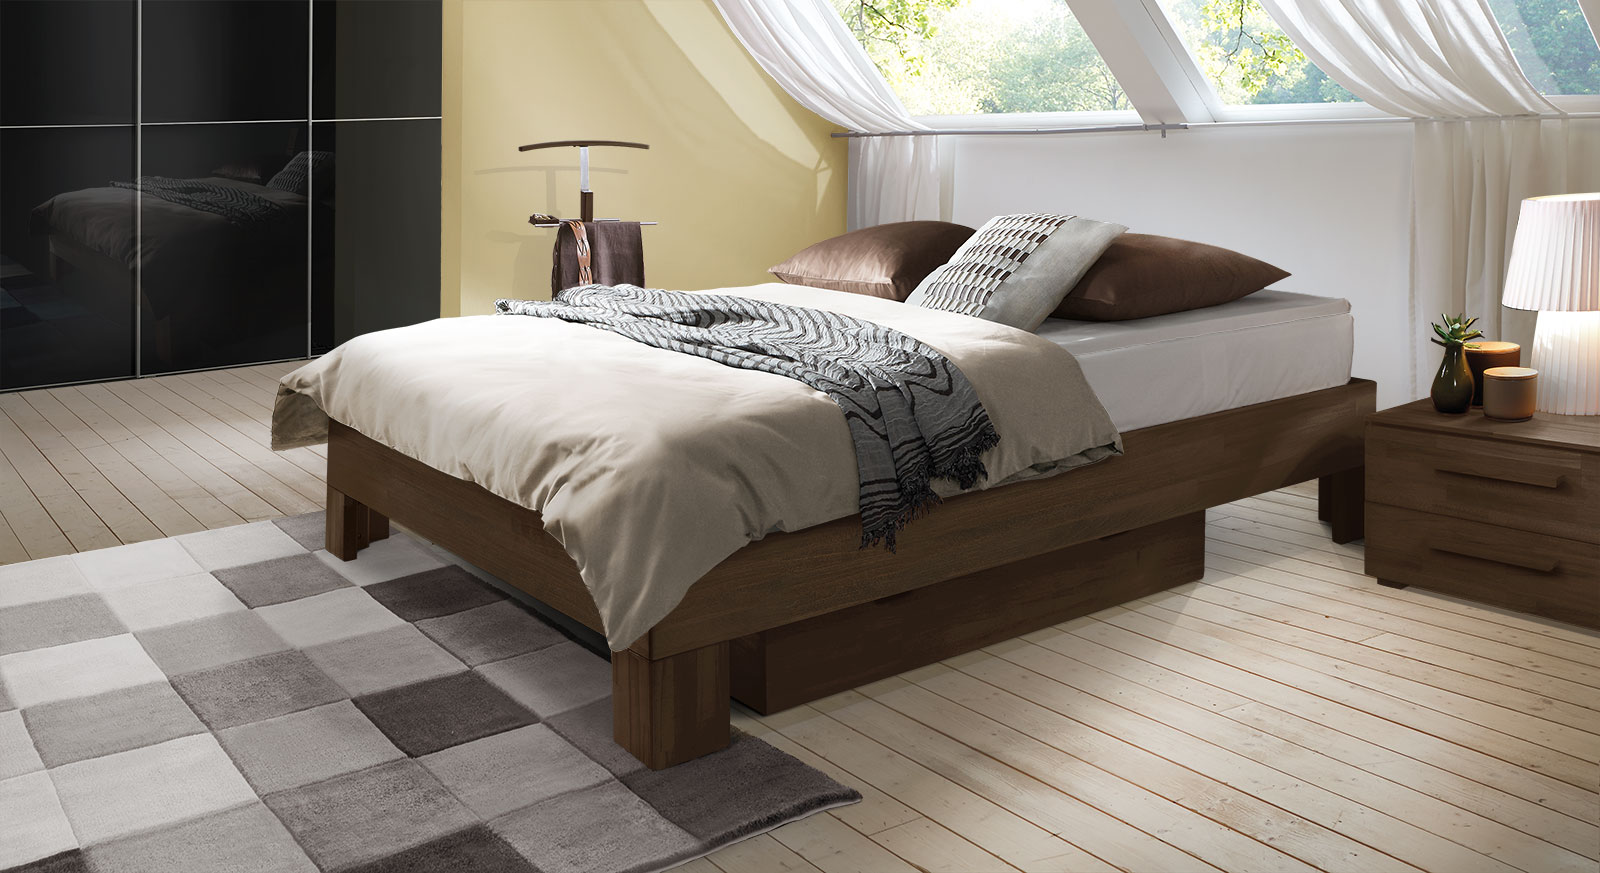 Boxspringliege Port-Louis in Buche wenge